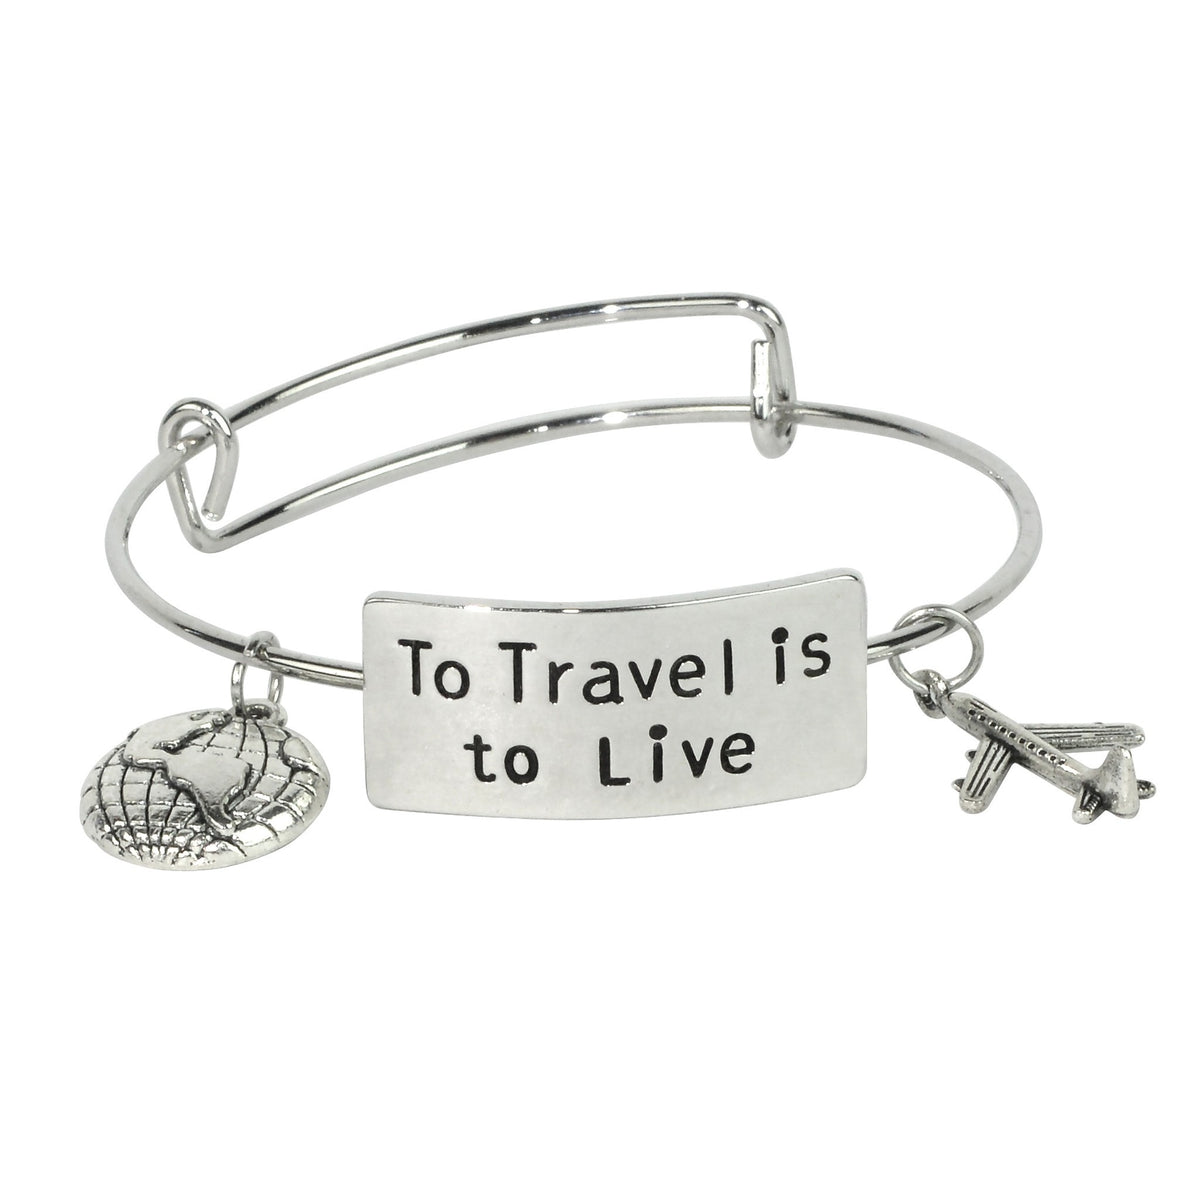 Premium 'To Travel Is To Live' Bracelet - FREE SHIPPING WORLDWIDE